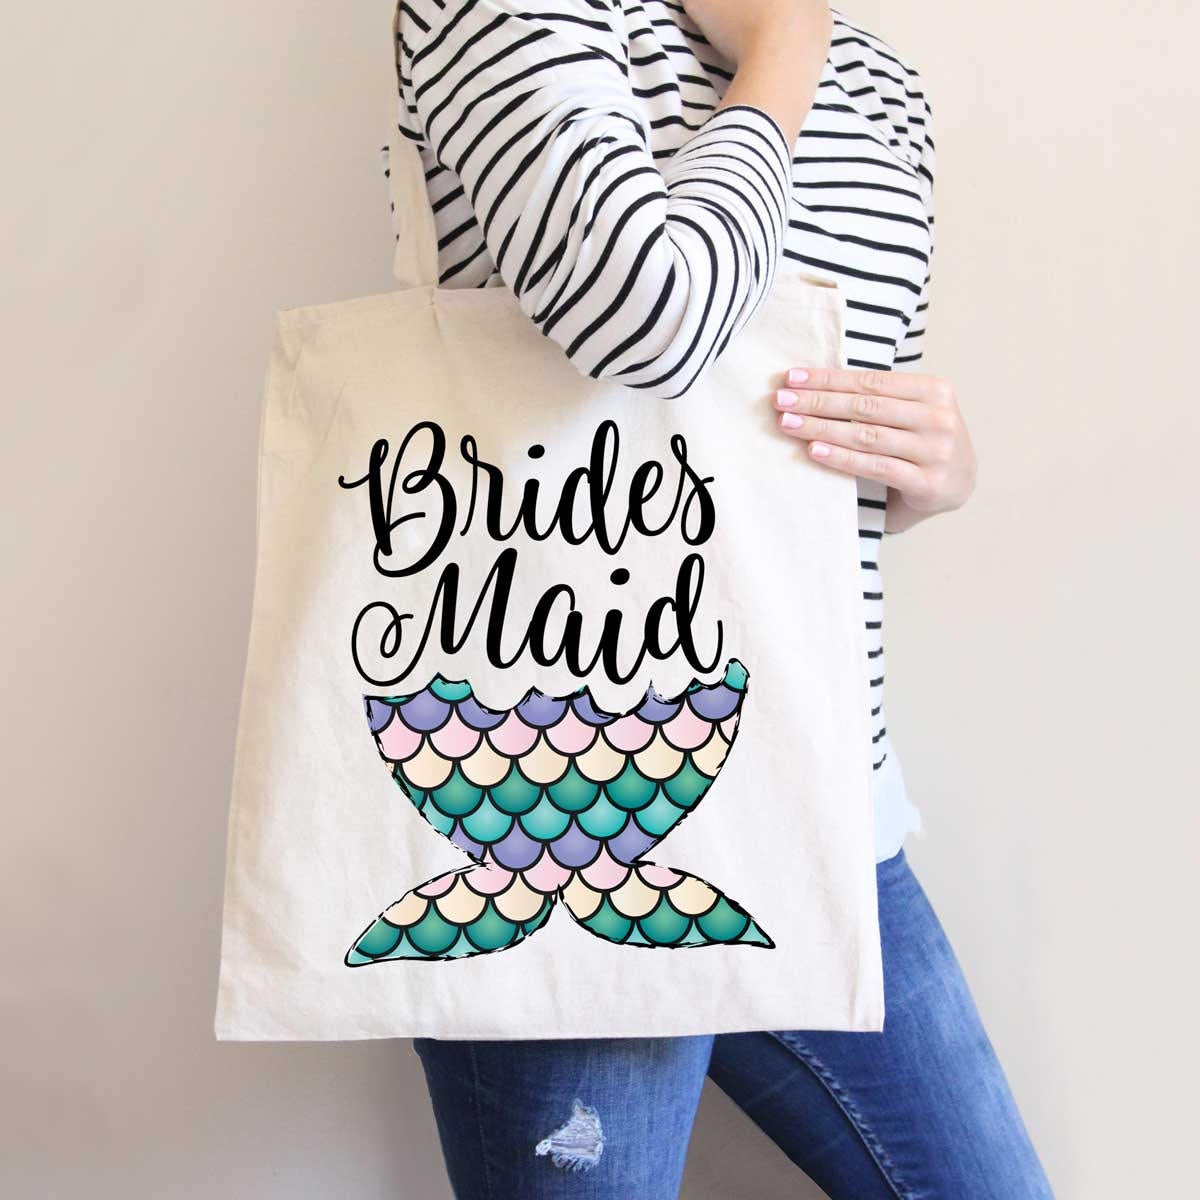 Bridesmaid Wedding Tote Bag, Bridal Party Gifts Mermaid Tail Colorful Design, Bride & Bags For Friends | Item - Mmb300